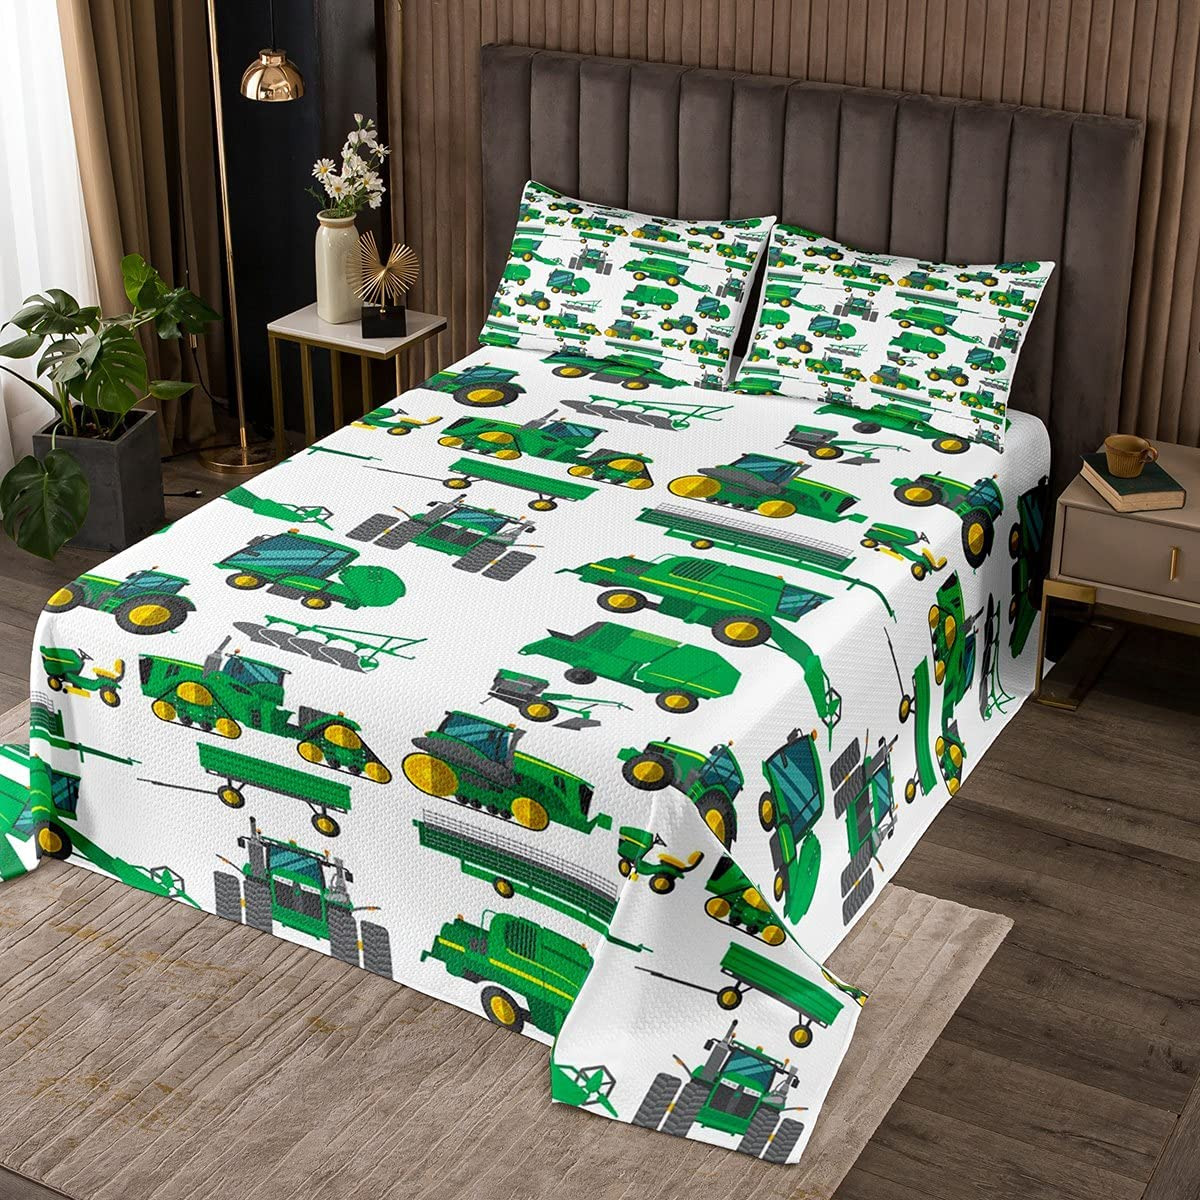 Boys Be super welcome Cartoon Car Bedspread Constructi Quilted Twin Cheap Excavator